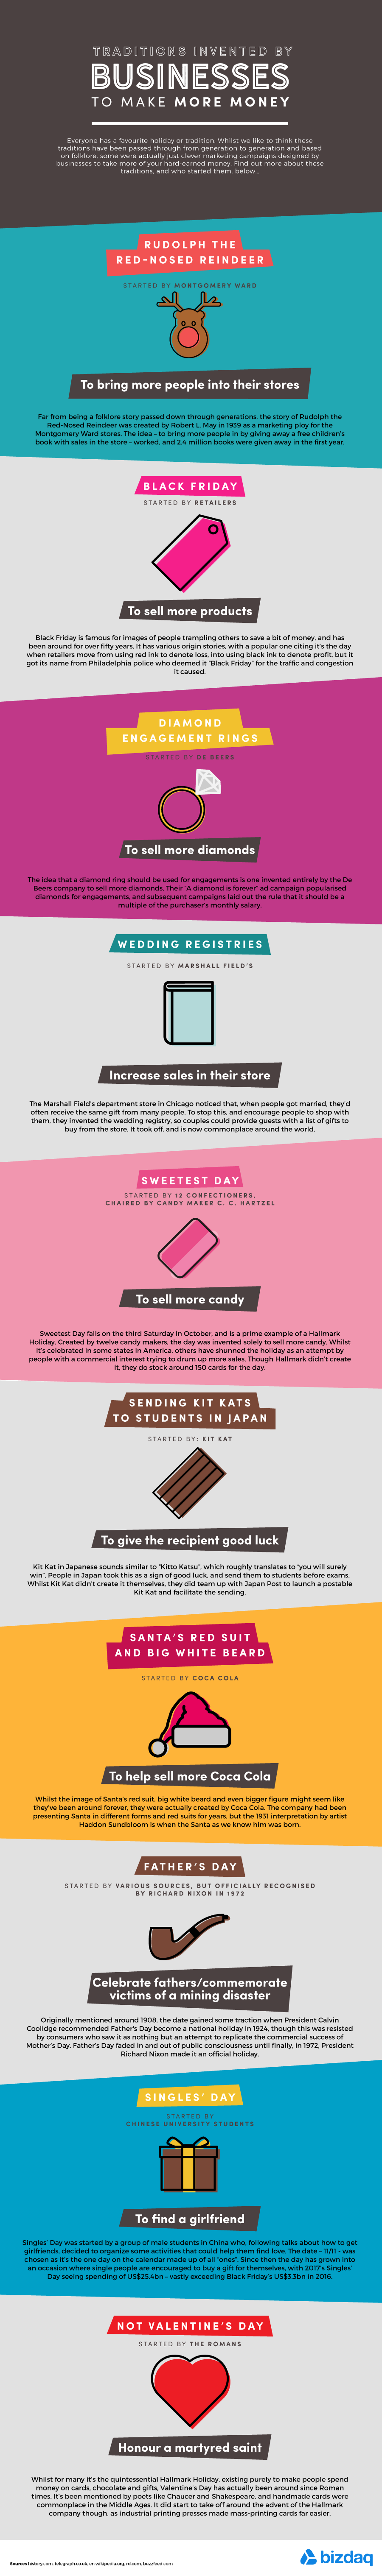 Traditions Invented by Businesses to Make More Money- #infographic